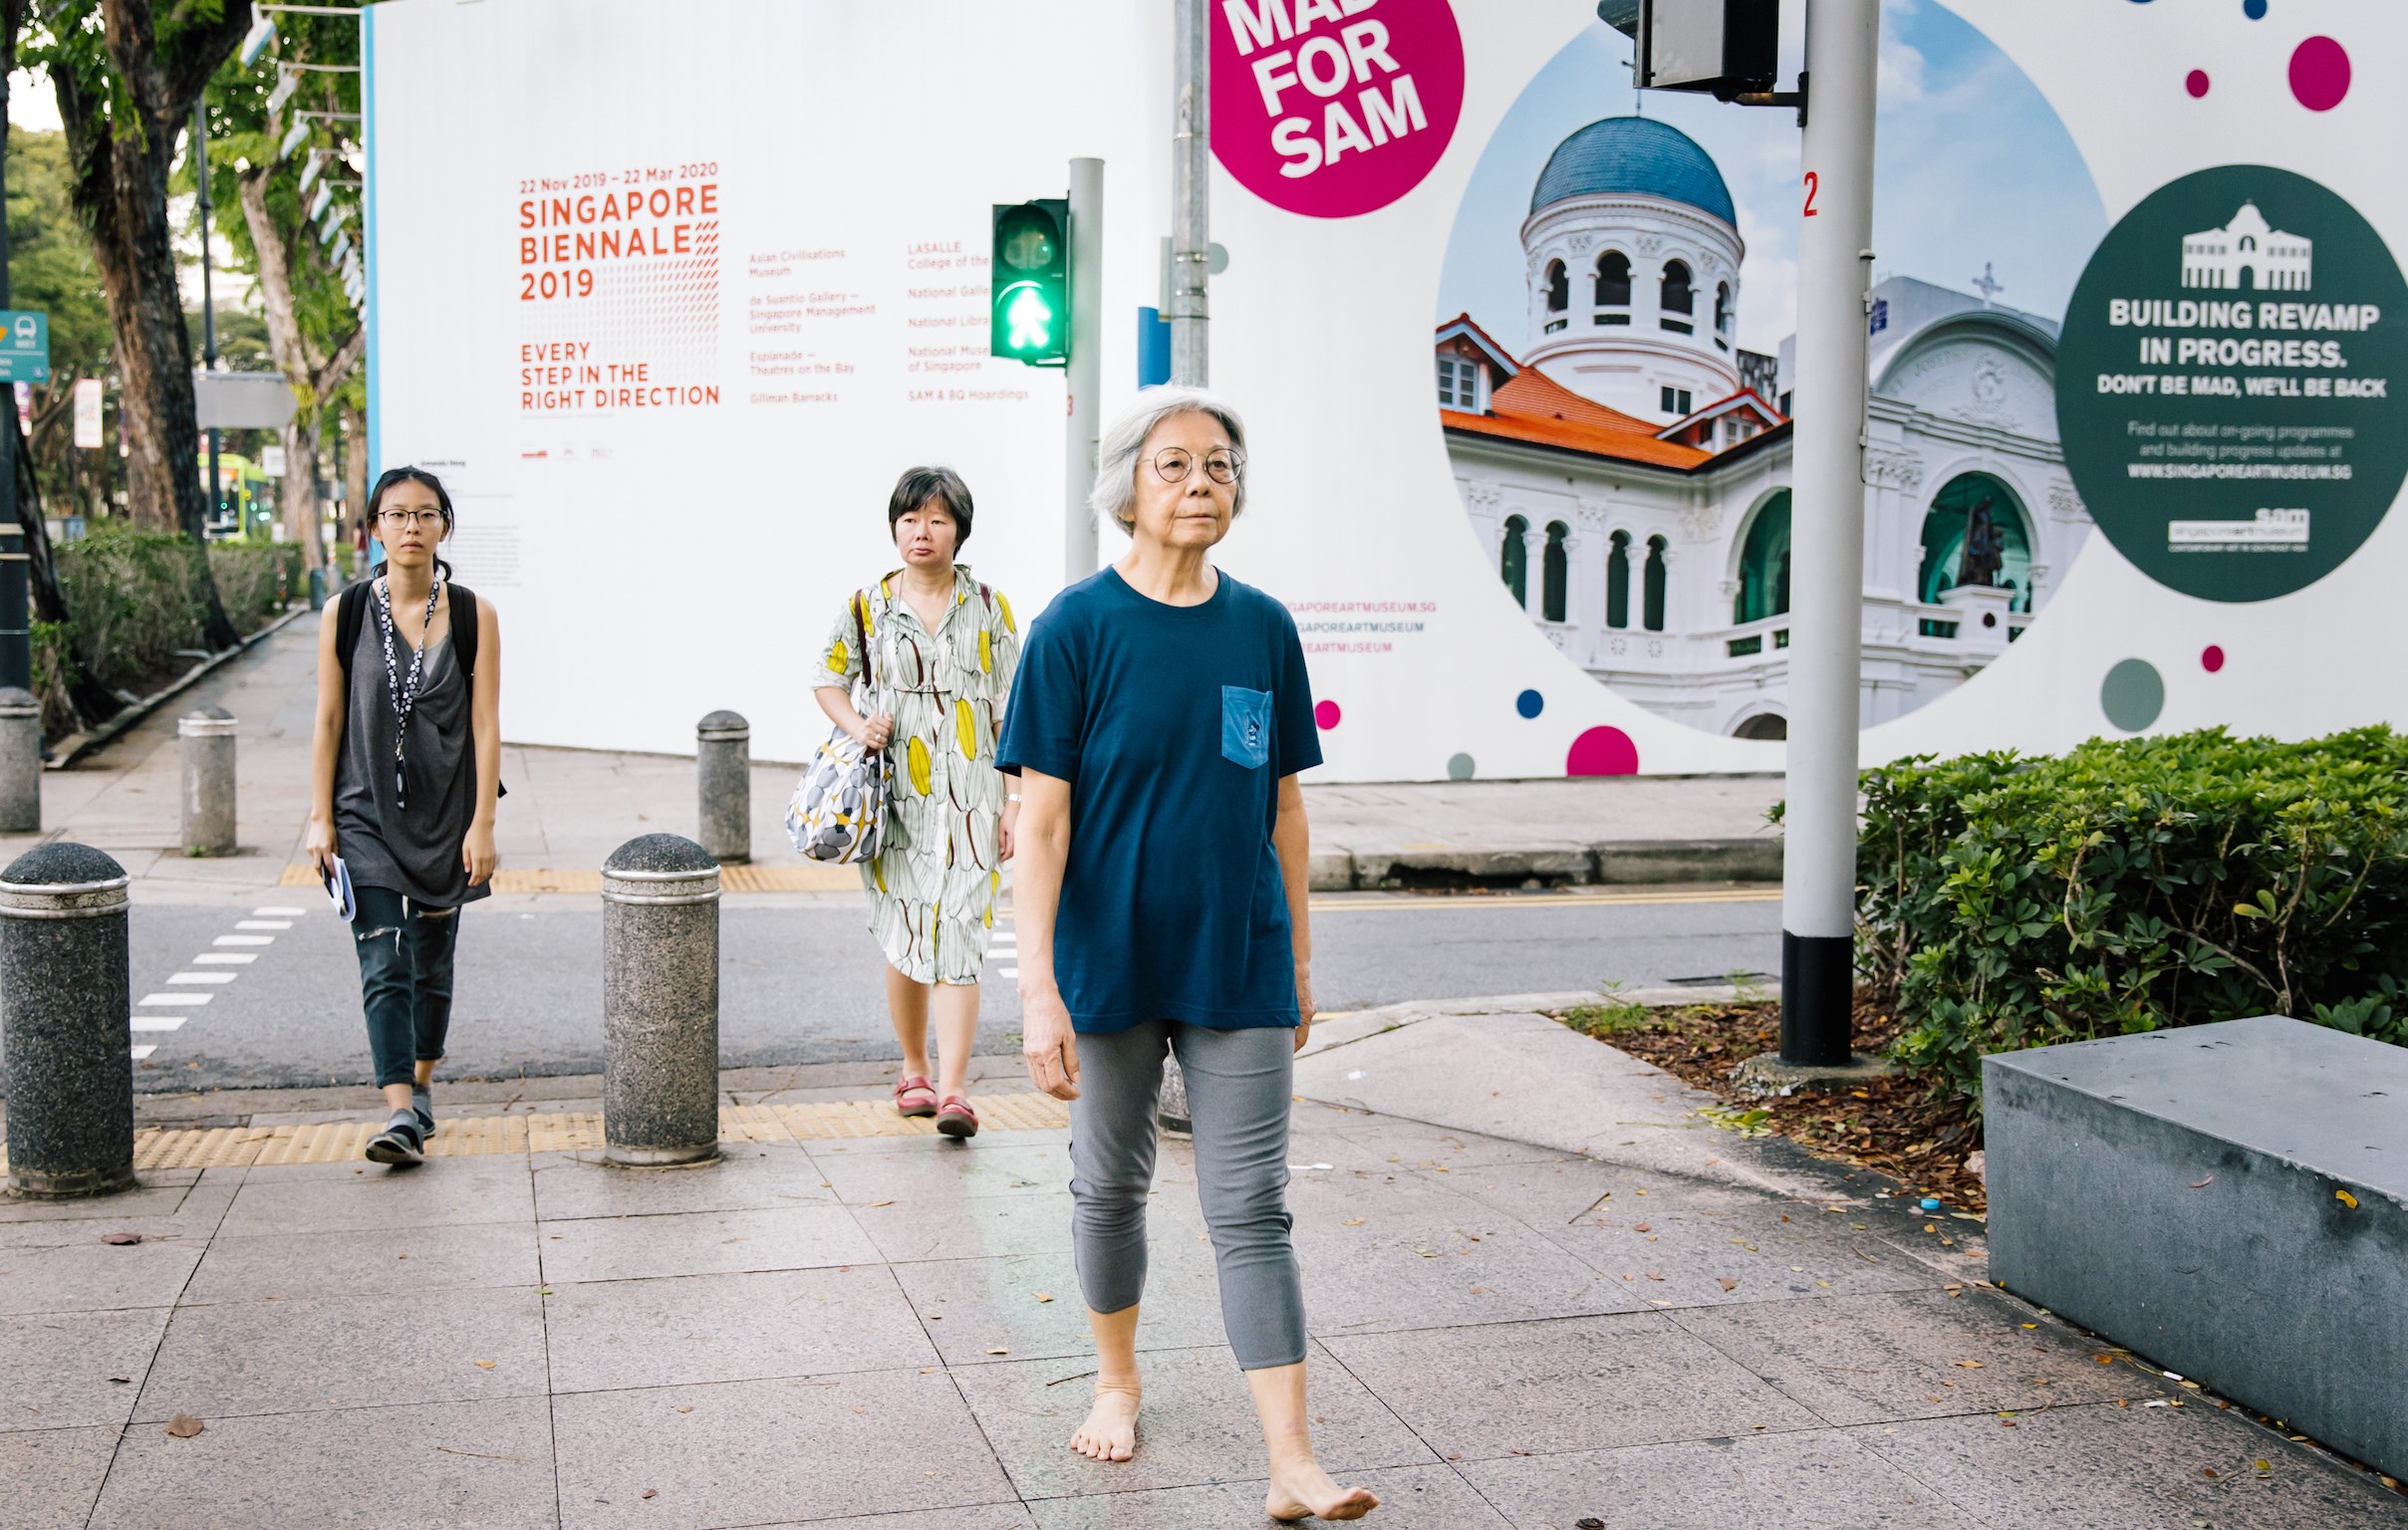 Local artist Amanda Heng wins the 12th Benesse Prize – for walking